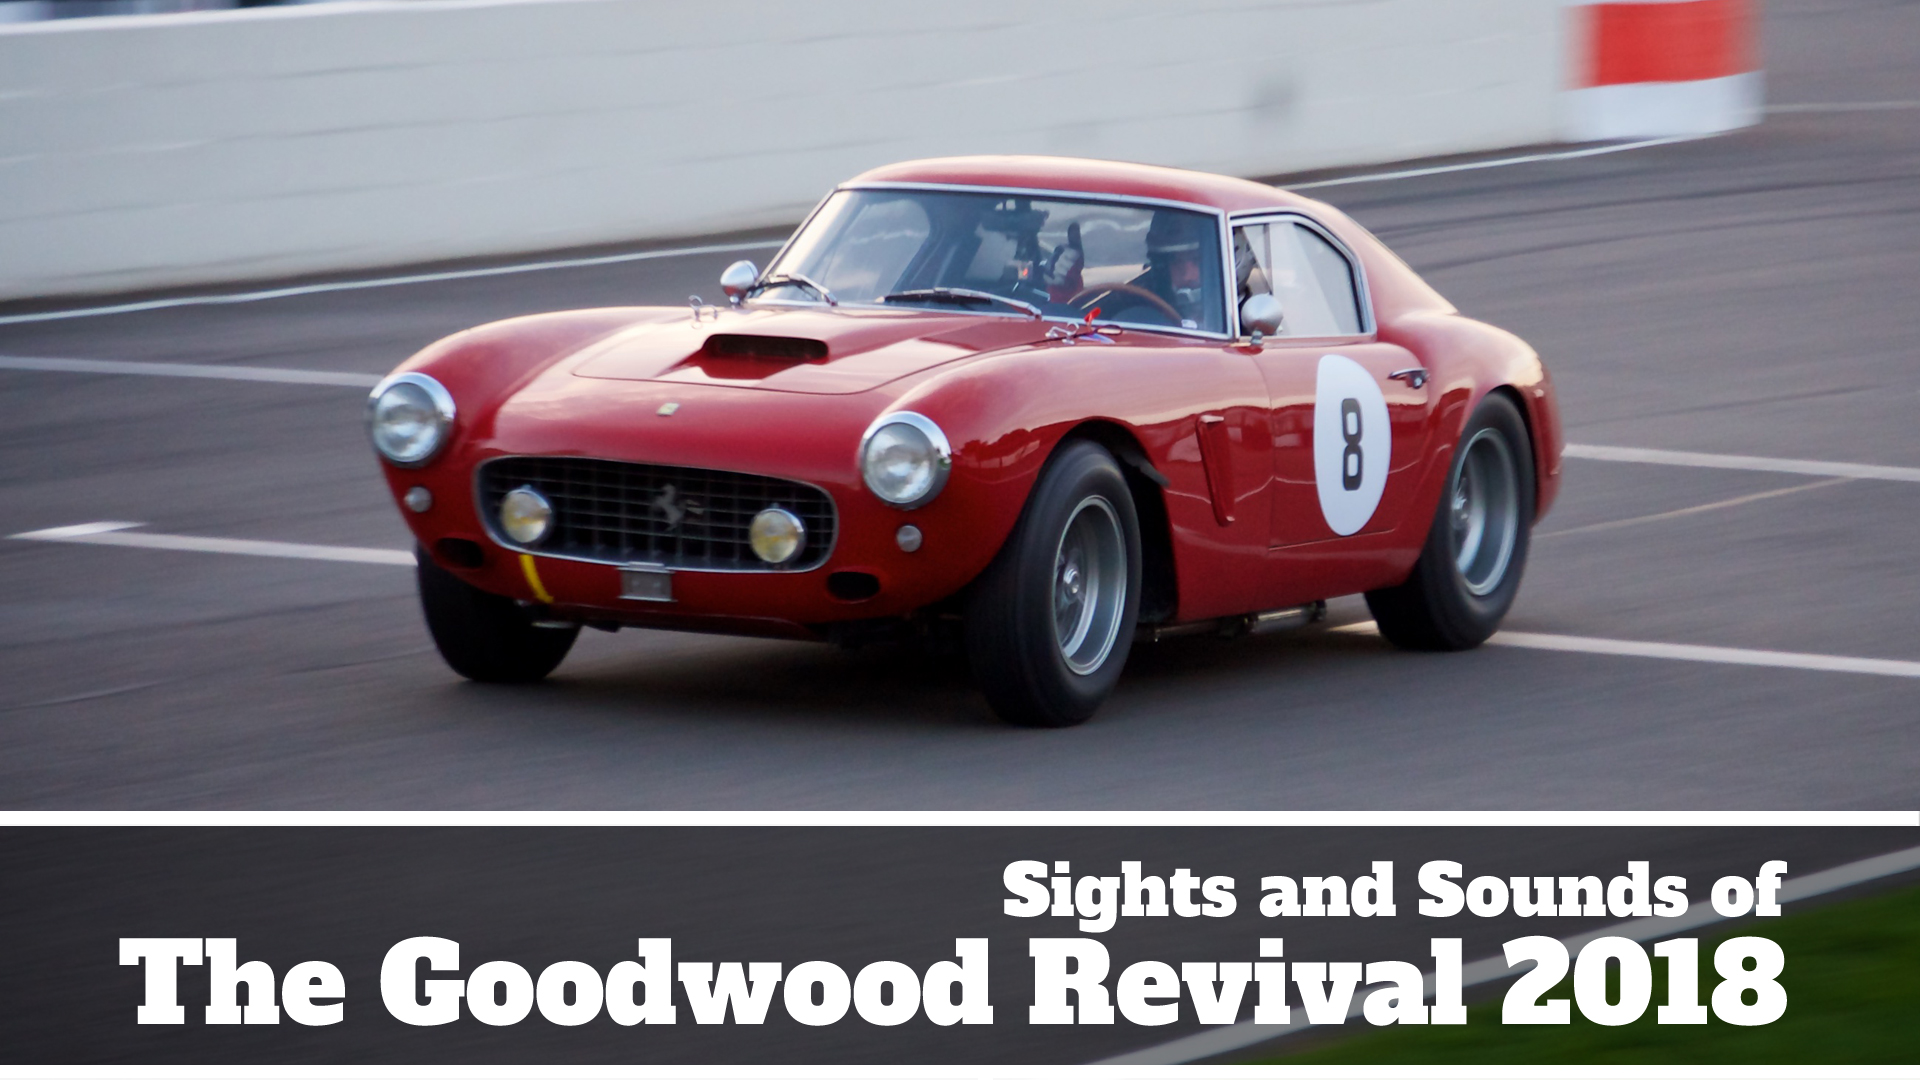 Take to the Road Sights and Sounds of The Goodwood Revival 2018